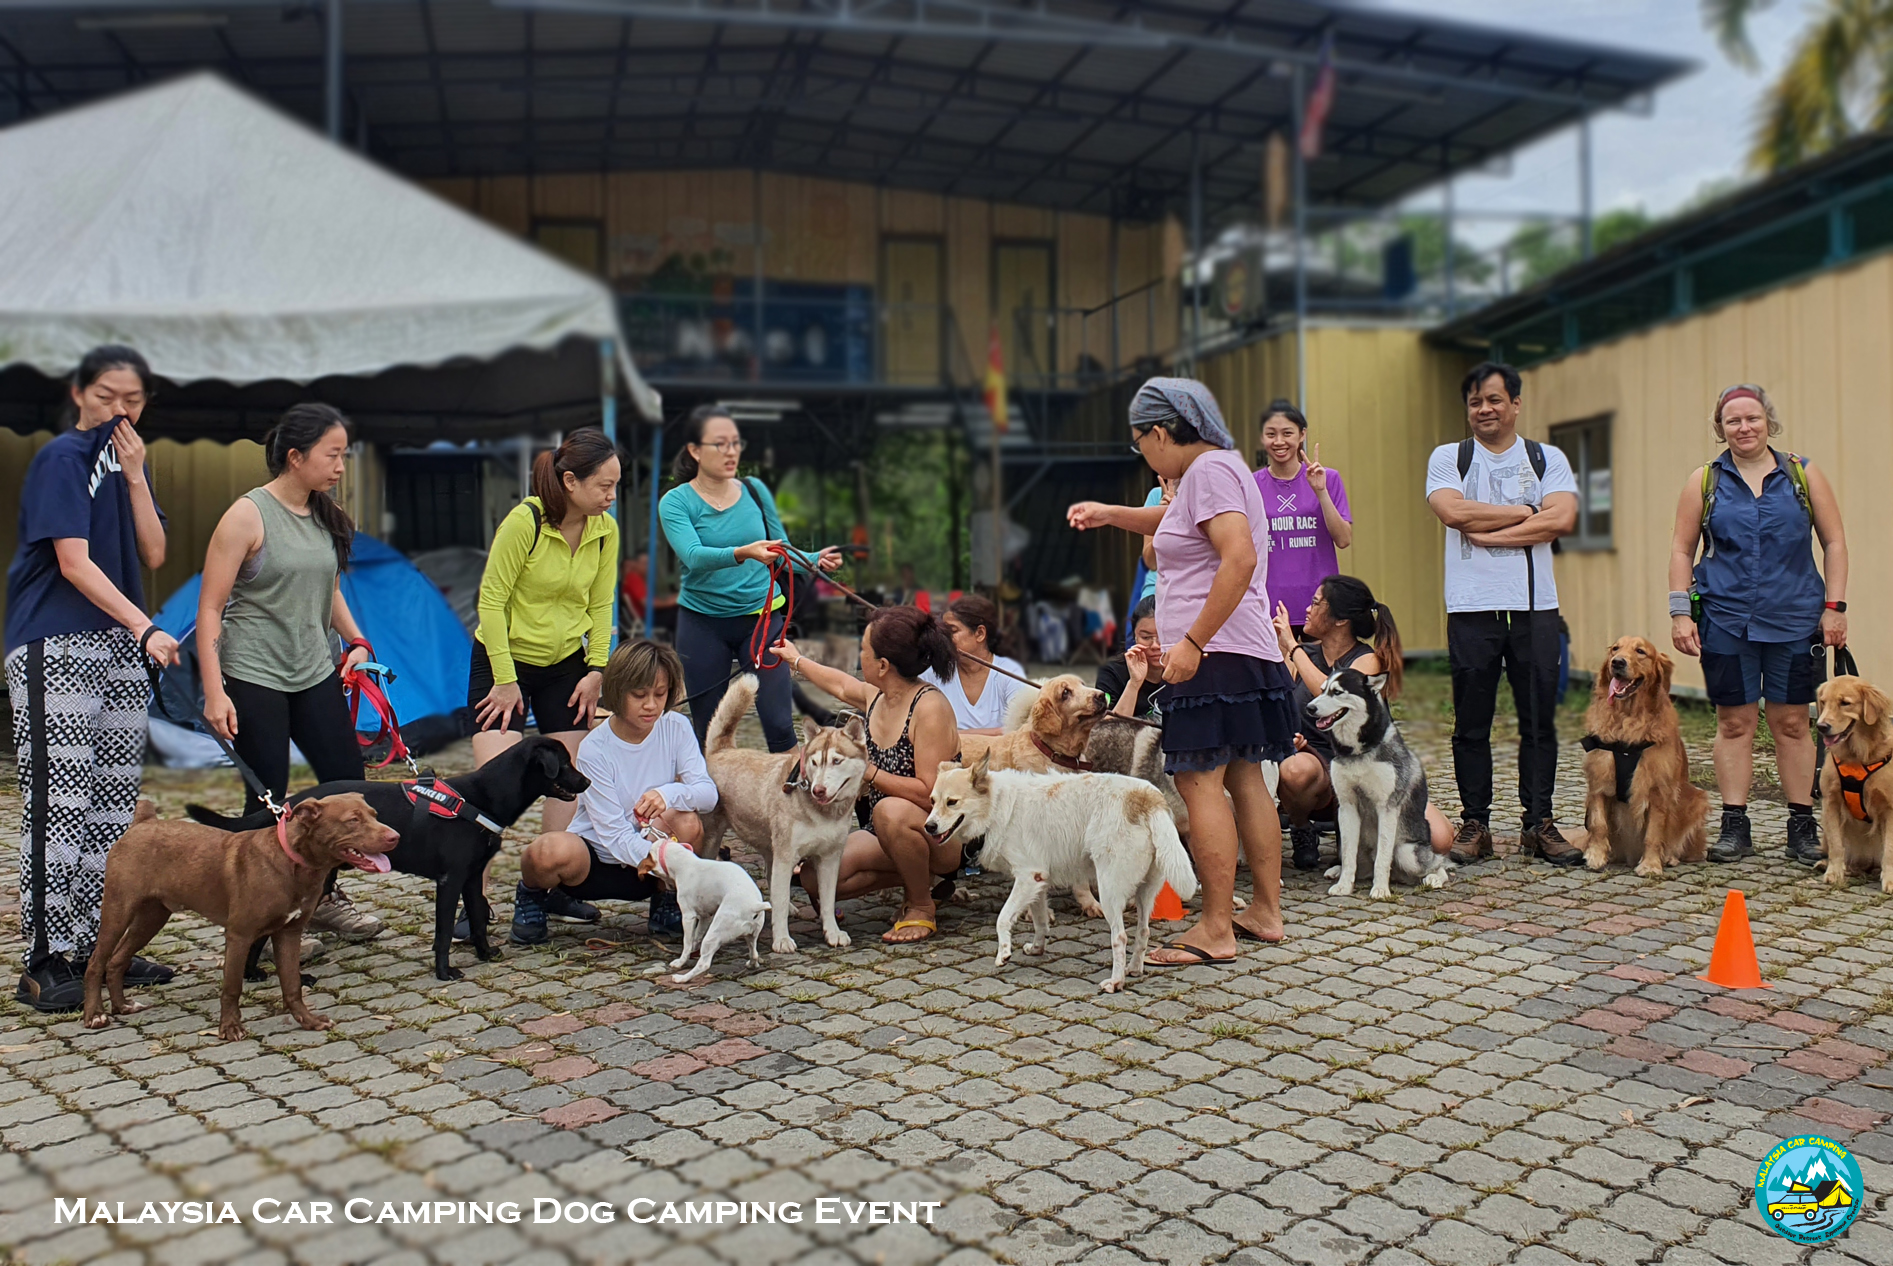 kayaking_dog_dog_camping_event_selangor_camping_site_malaysia_car_camping_private_event_organizer-11